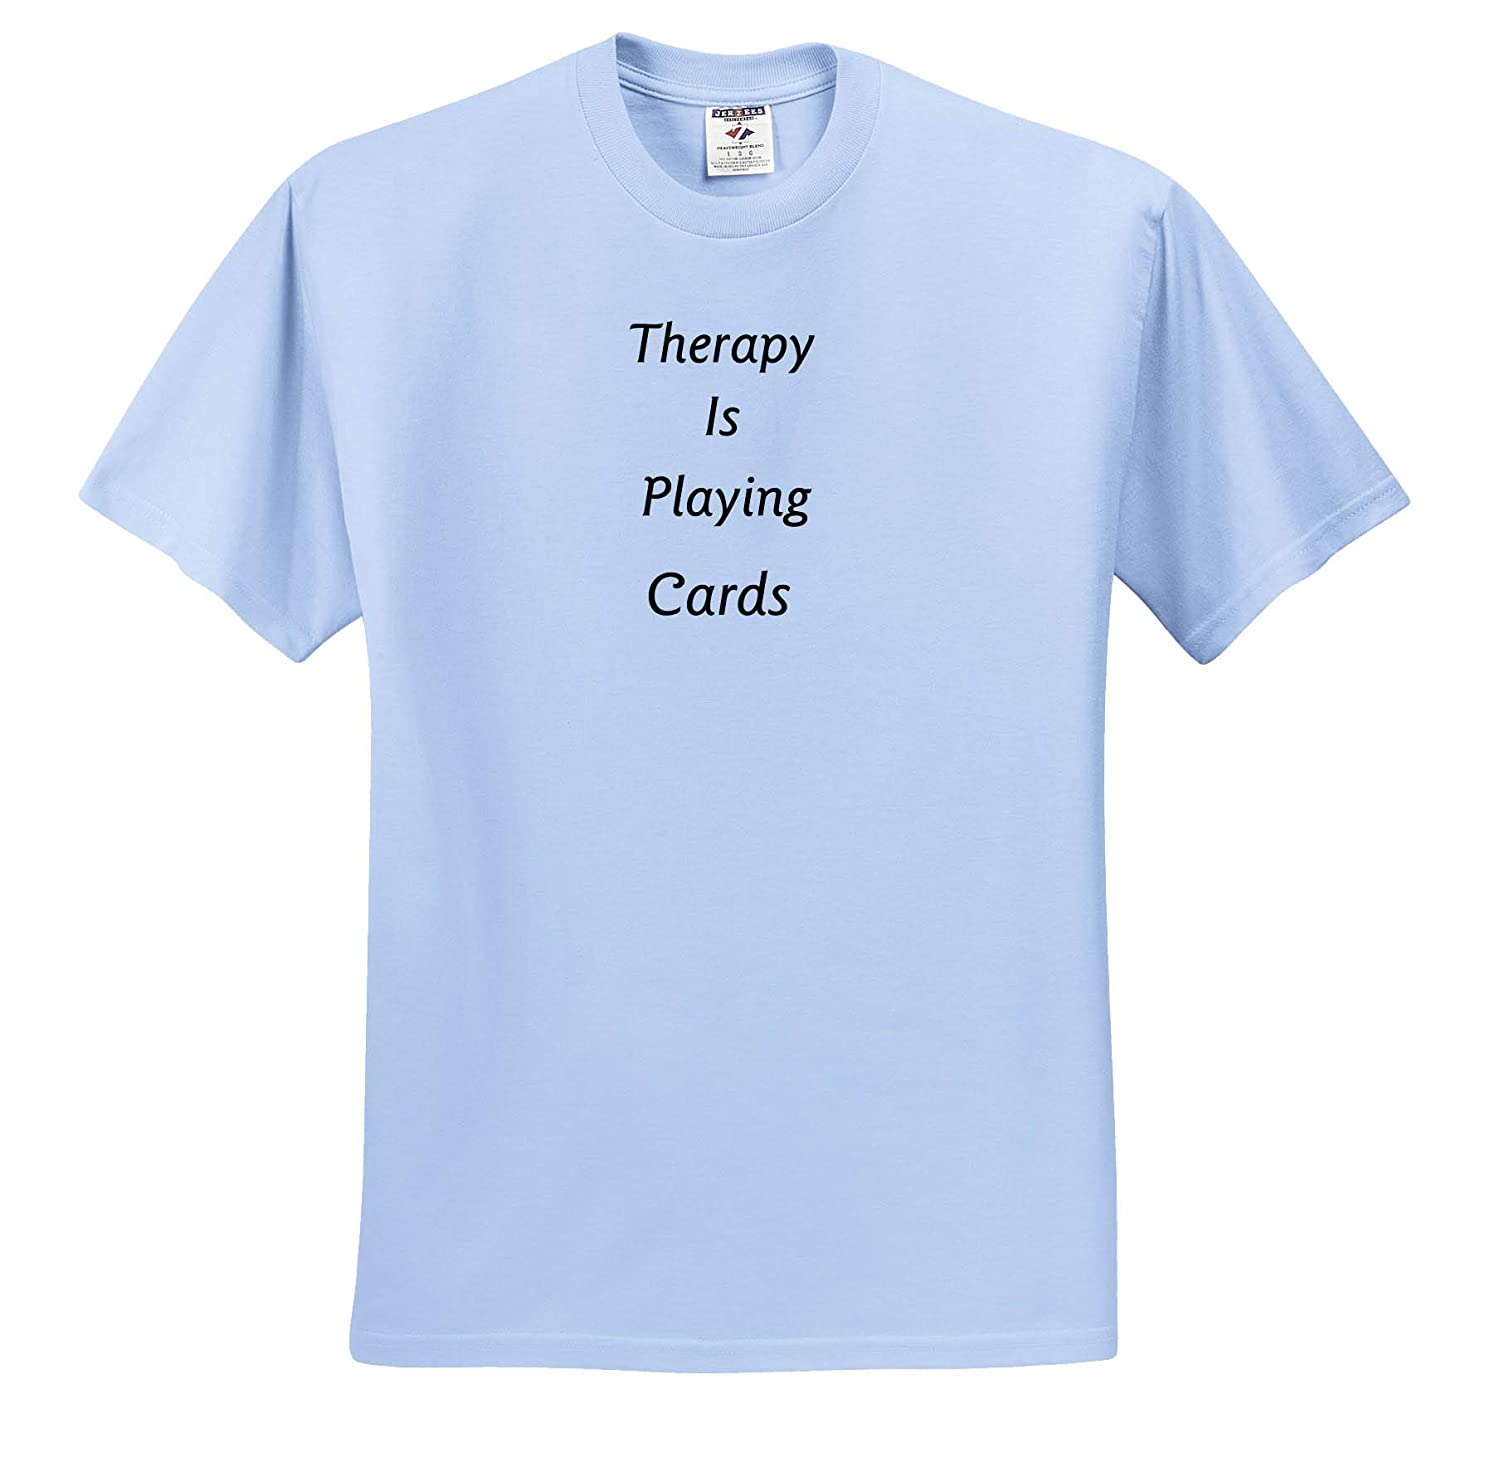 Therapy is Image of Therapy is Playing Cards in Bold Typography 3dRose Lens Art by Florene ts/_311373 Adult T-Shirt XL